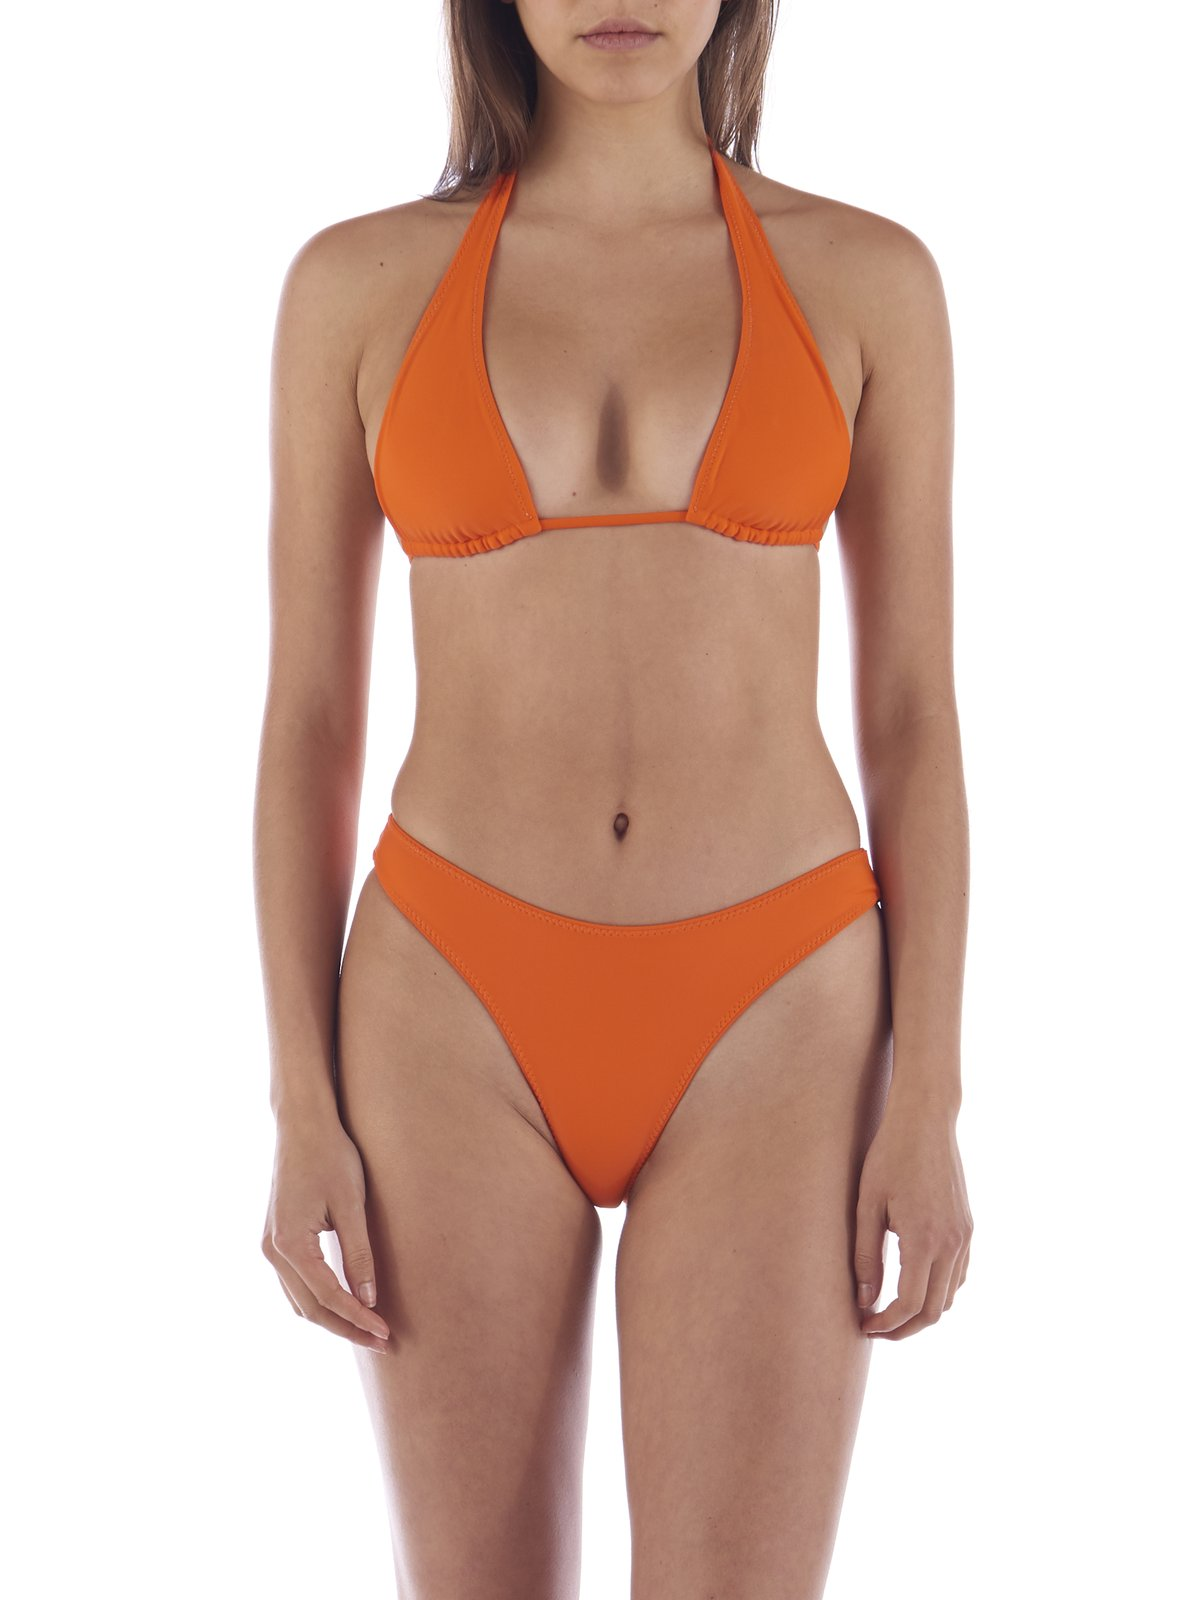 Ama Lama Top Rust by Dipped in Blue, available on dippedinbluebikinis.com for $90 Kylie Jenner Top Exact Product